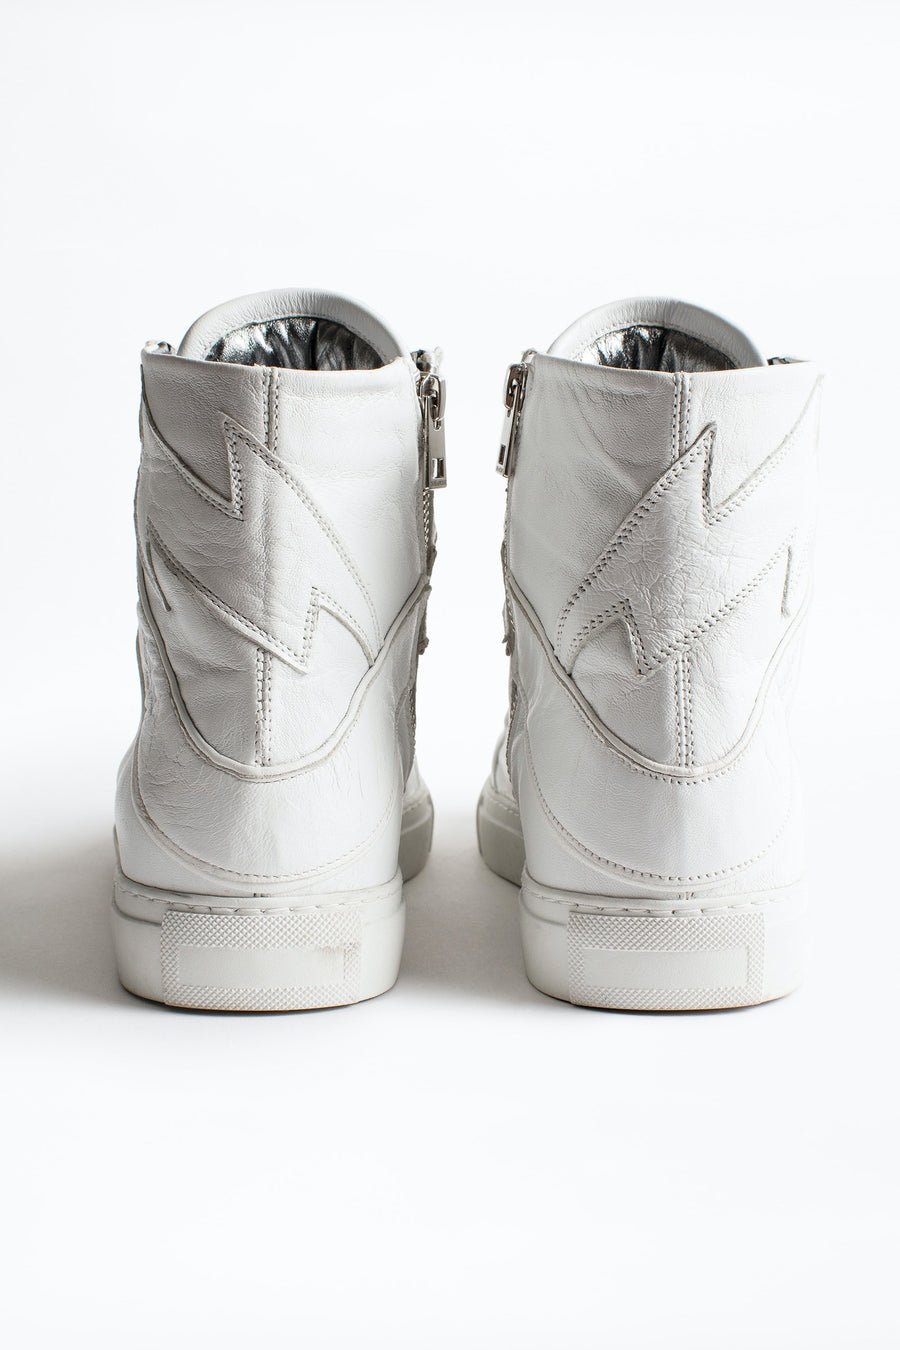 Zadig et Voltaire Flash High Tops